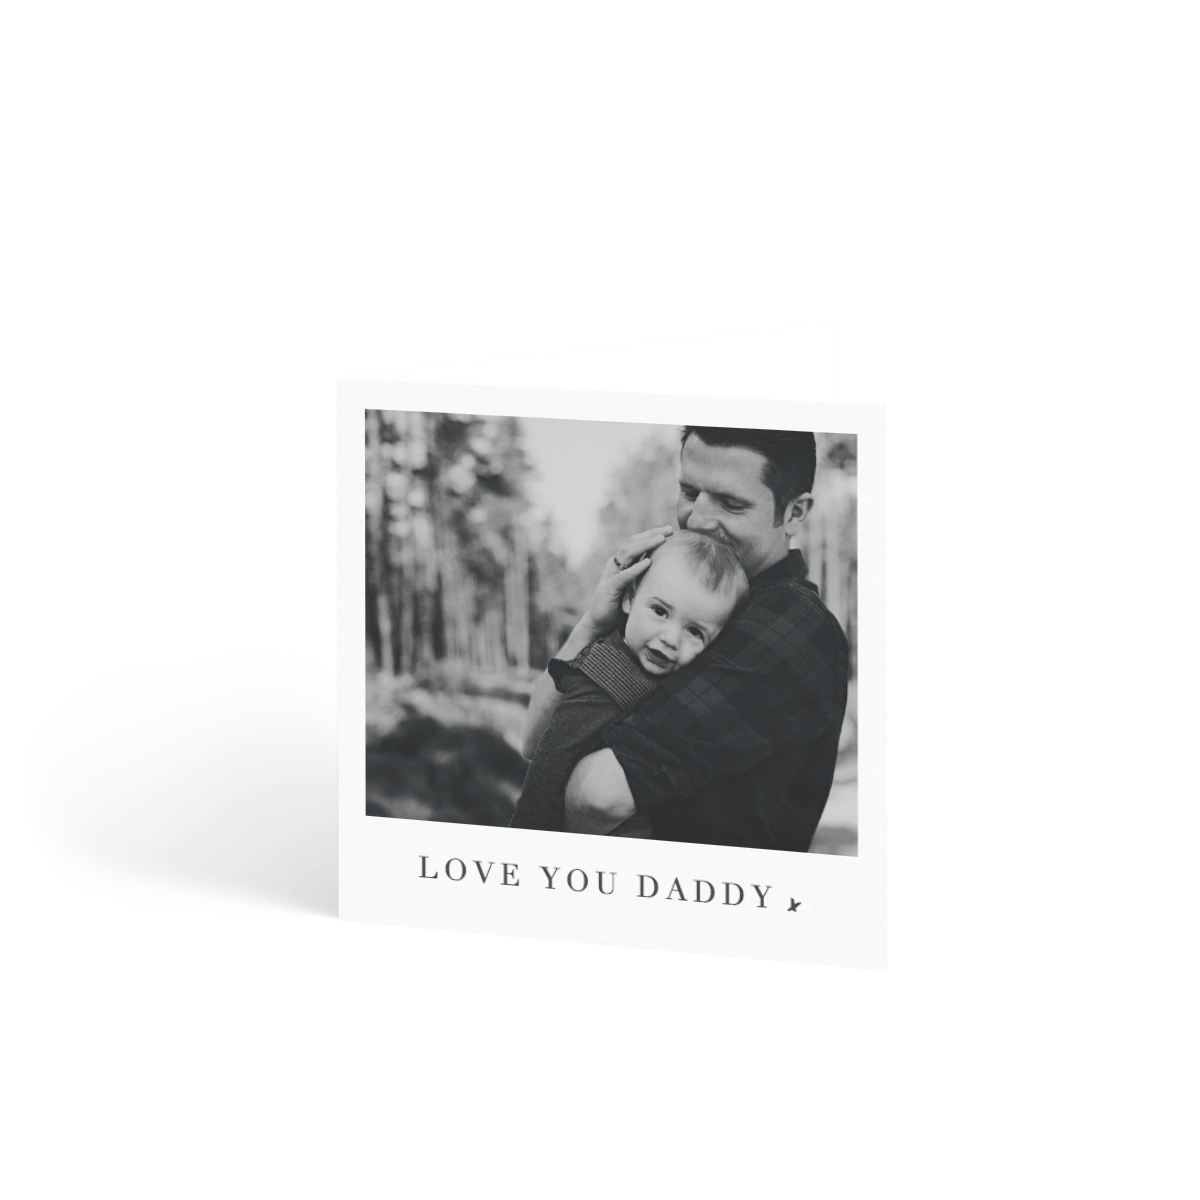 Https%3a%2f%2fwww.papier.com%2fproduct image%2f5974%2f16%2ffather s day photo card 1555 avant 1463138620.png?ixlib=rb 1.1